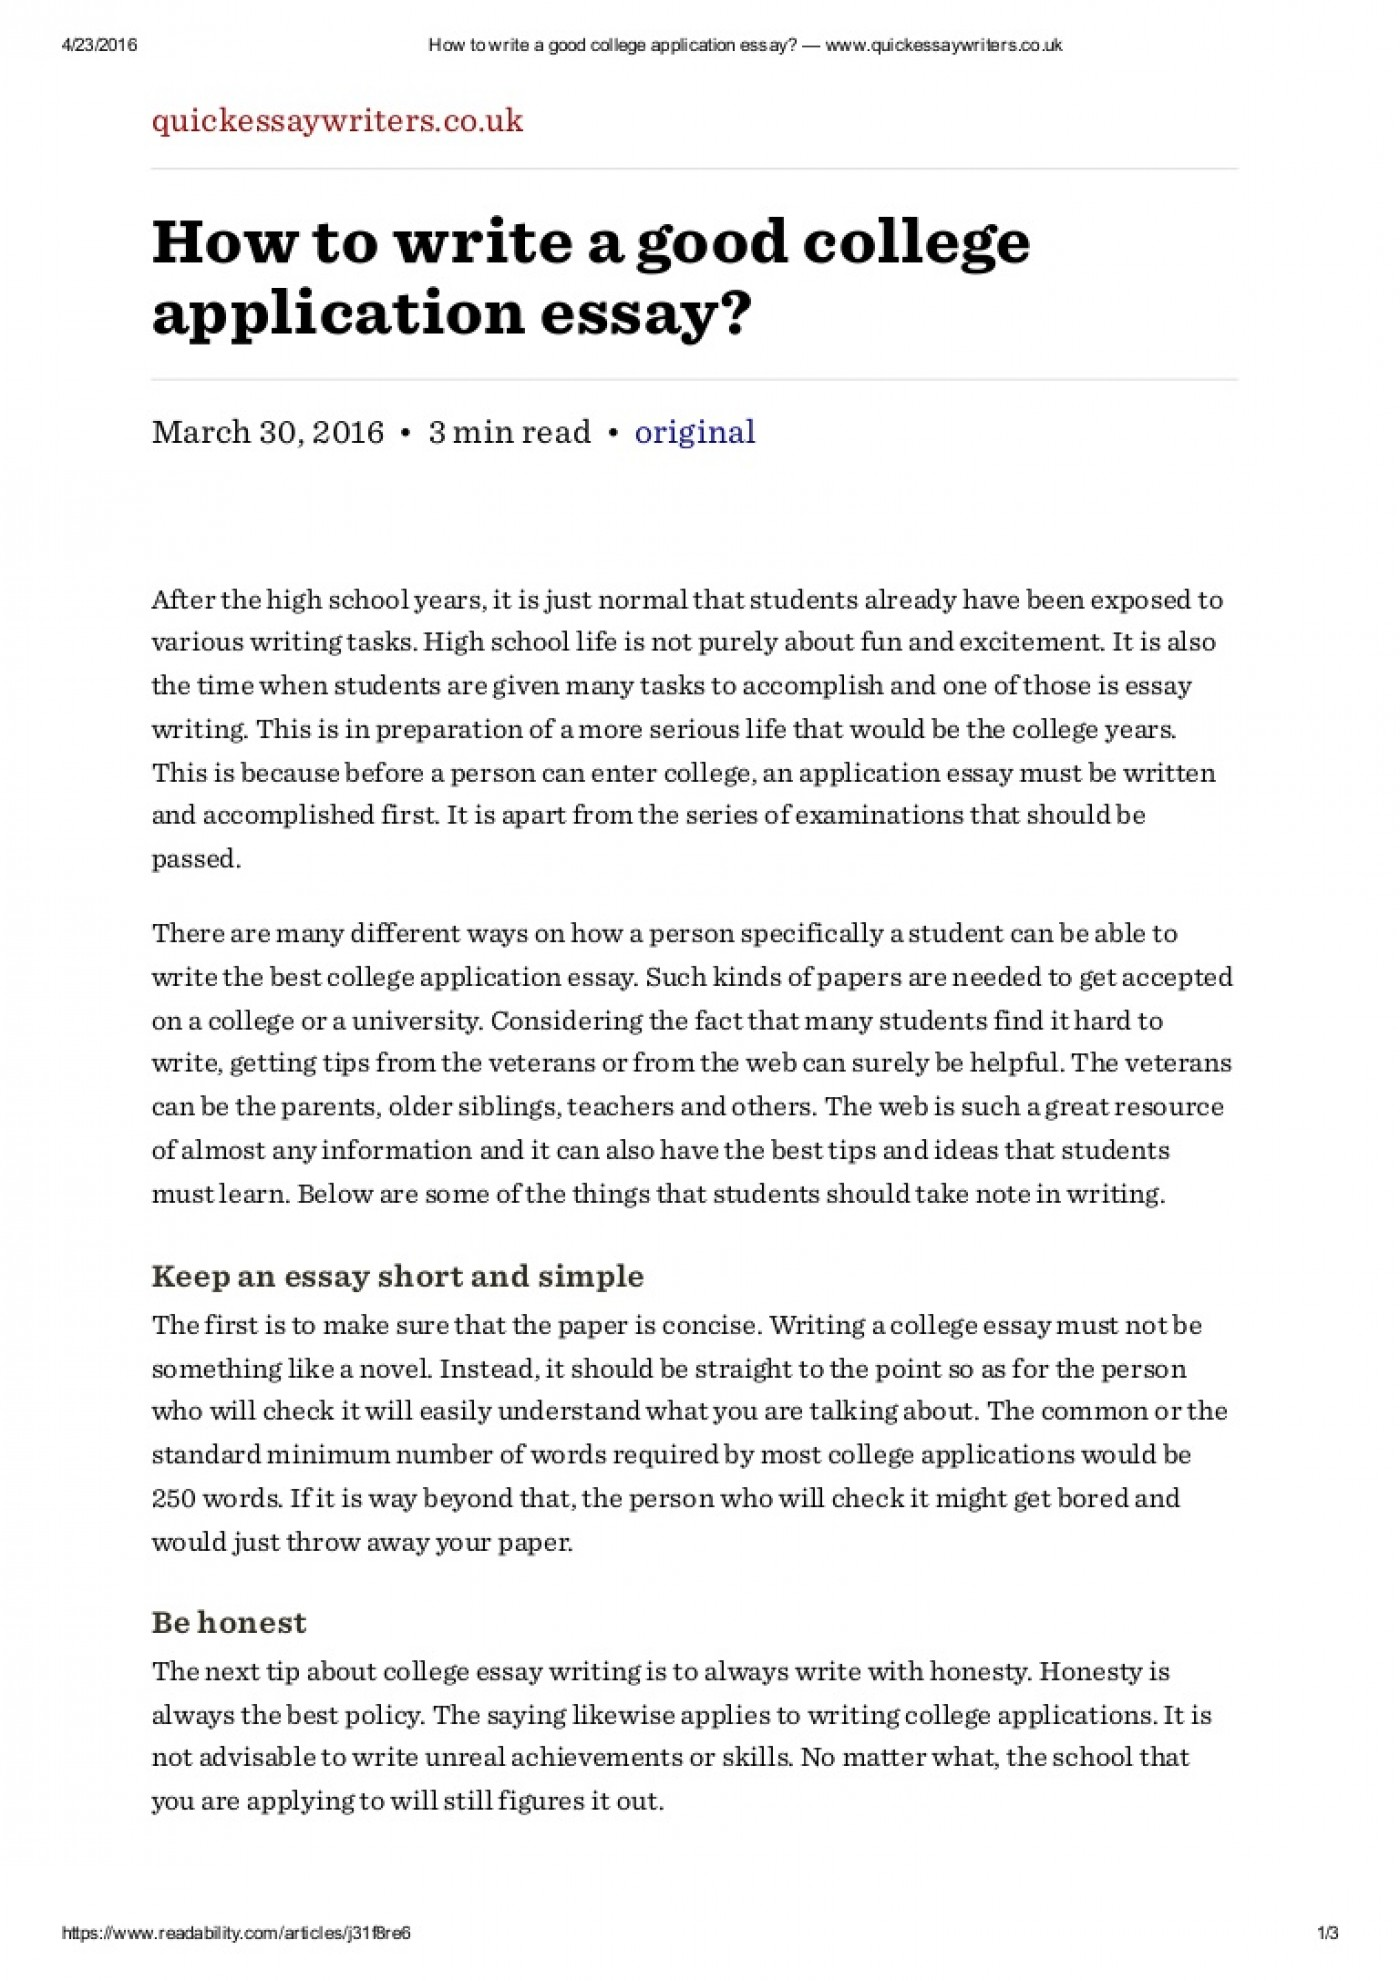 009 Howtowriteagoodcollegeapplicationessaywww Thumbnail Essay Example Writing College Rare A Application How To Write That Stands Out About Yourself Examples Of Uc Essays 1400